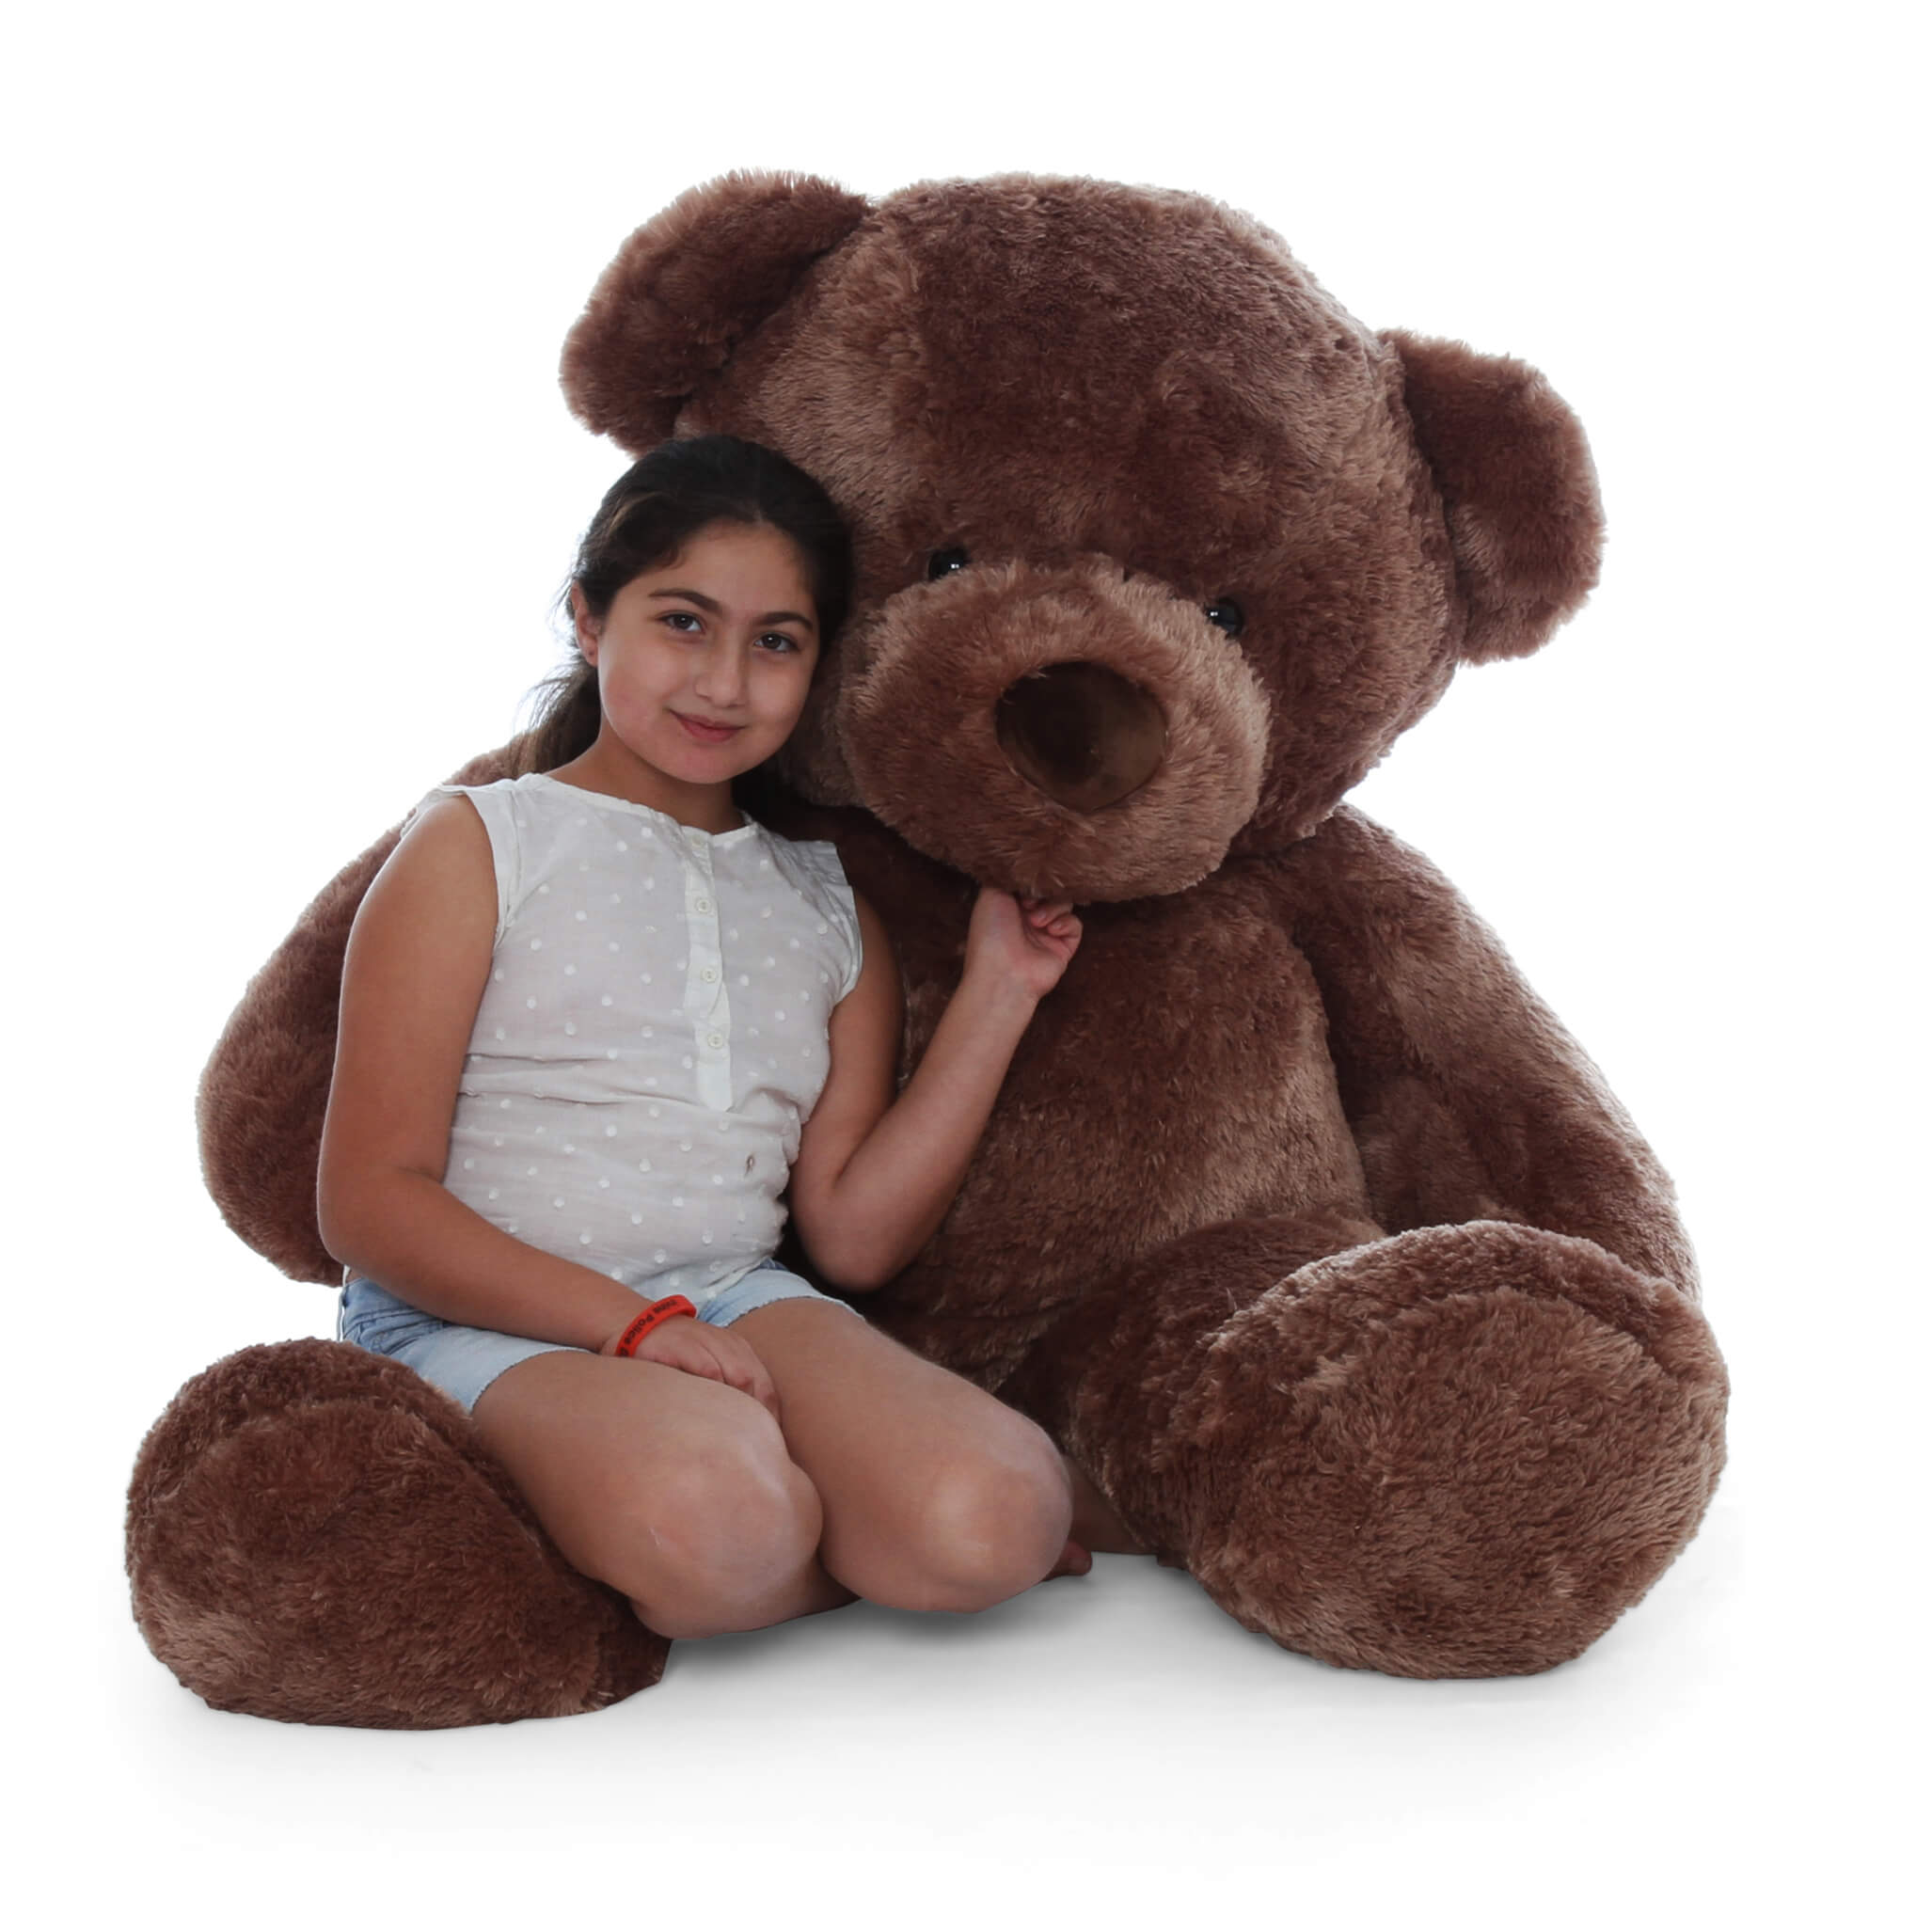 5ft-adorable-brown-teddy-bear-sweetheart-big-chubs-a-plush-teddy-bear-copy-1.jpg